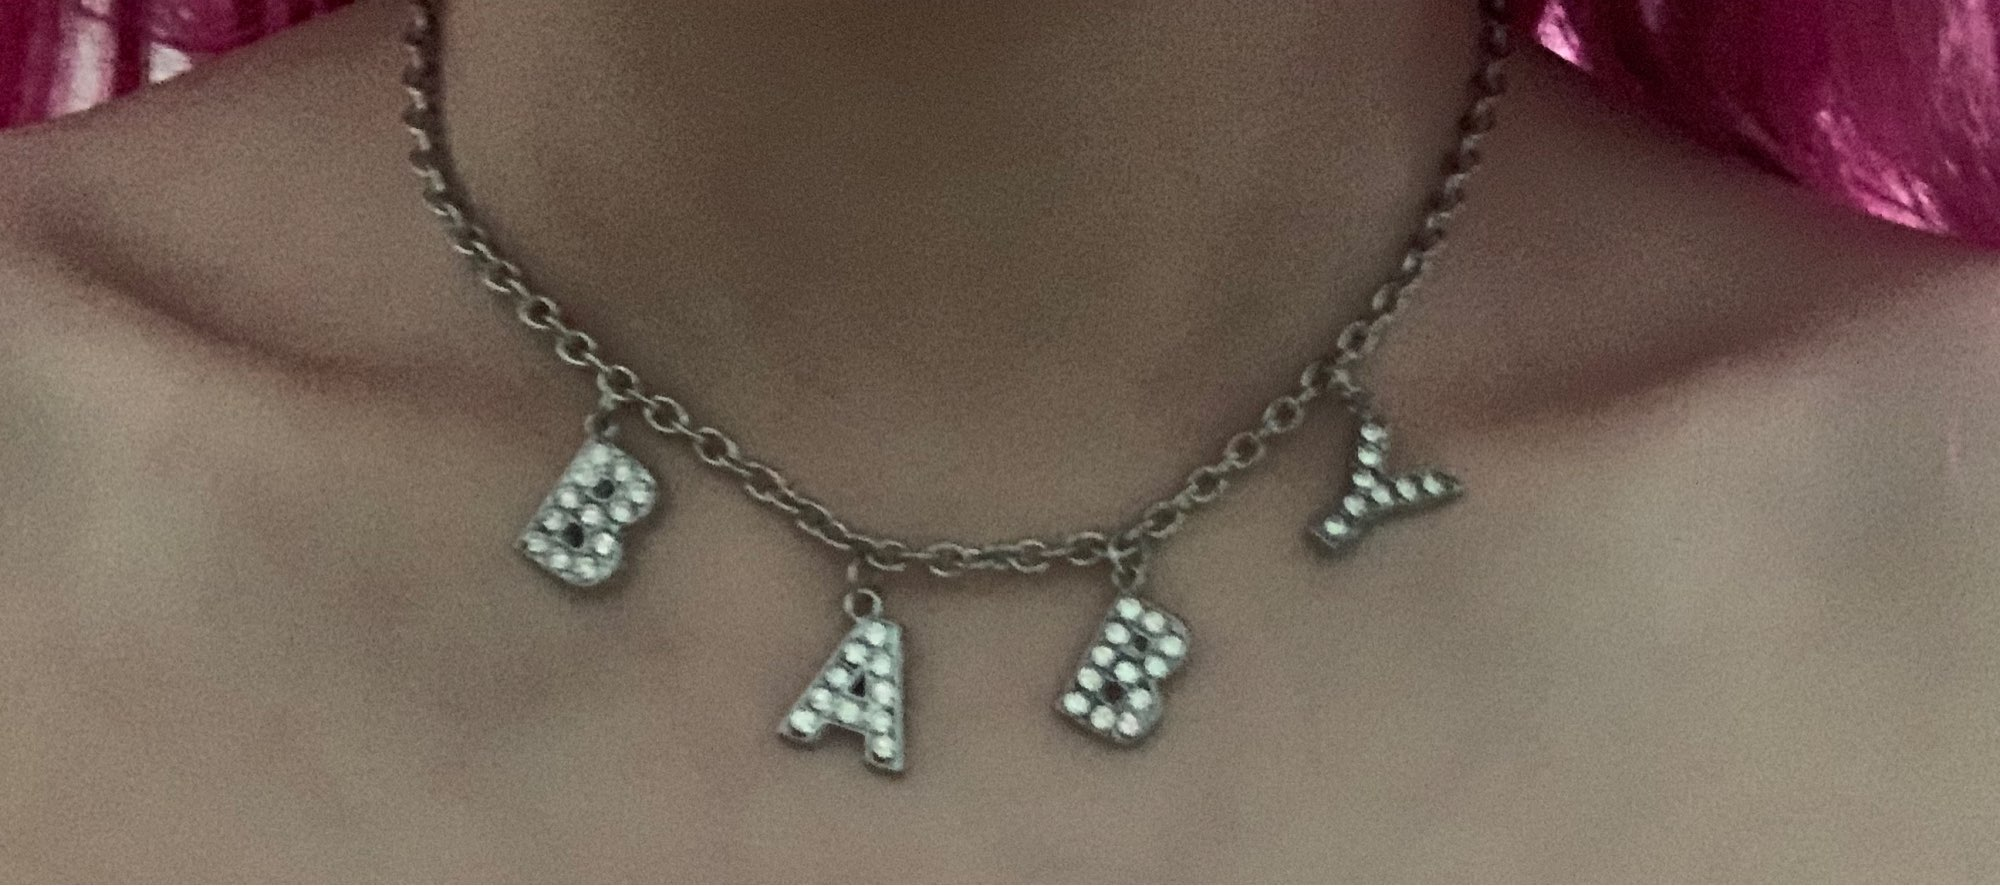 E-girl Y2K Soft girl Letter Necklace photo review